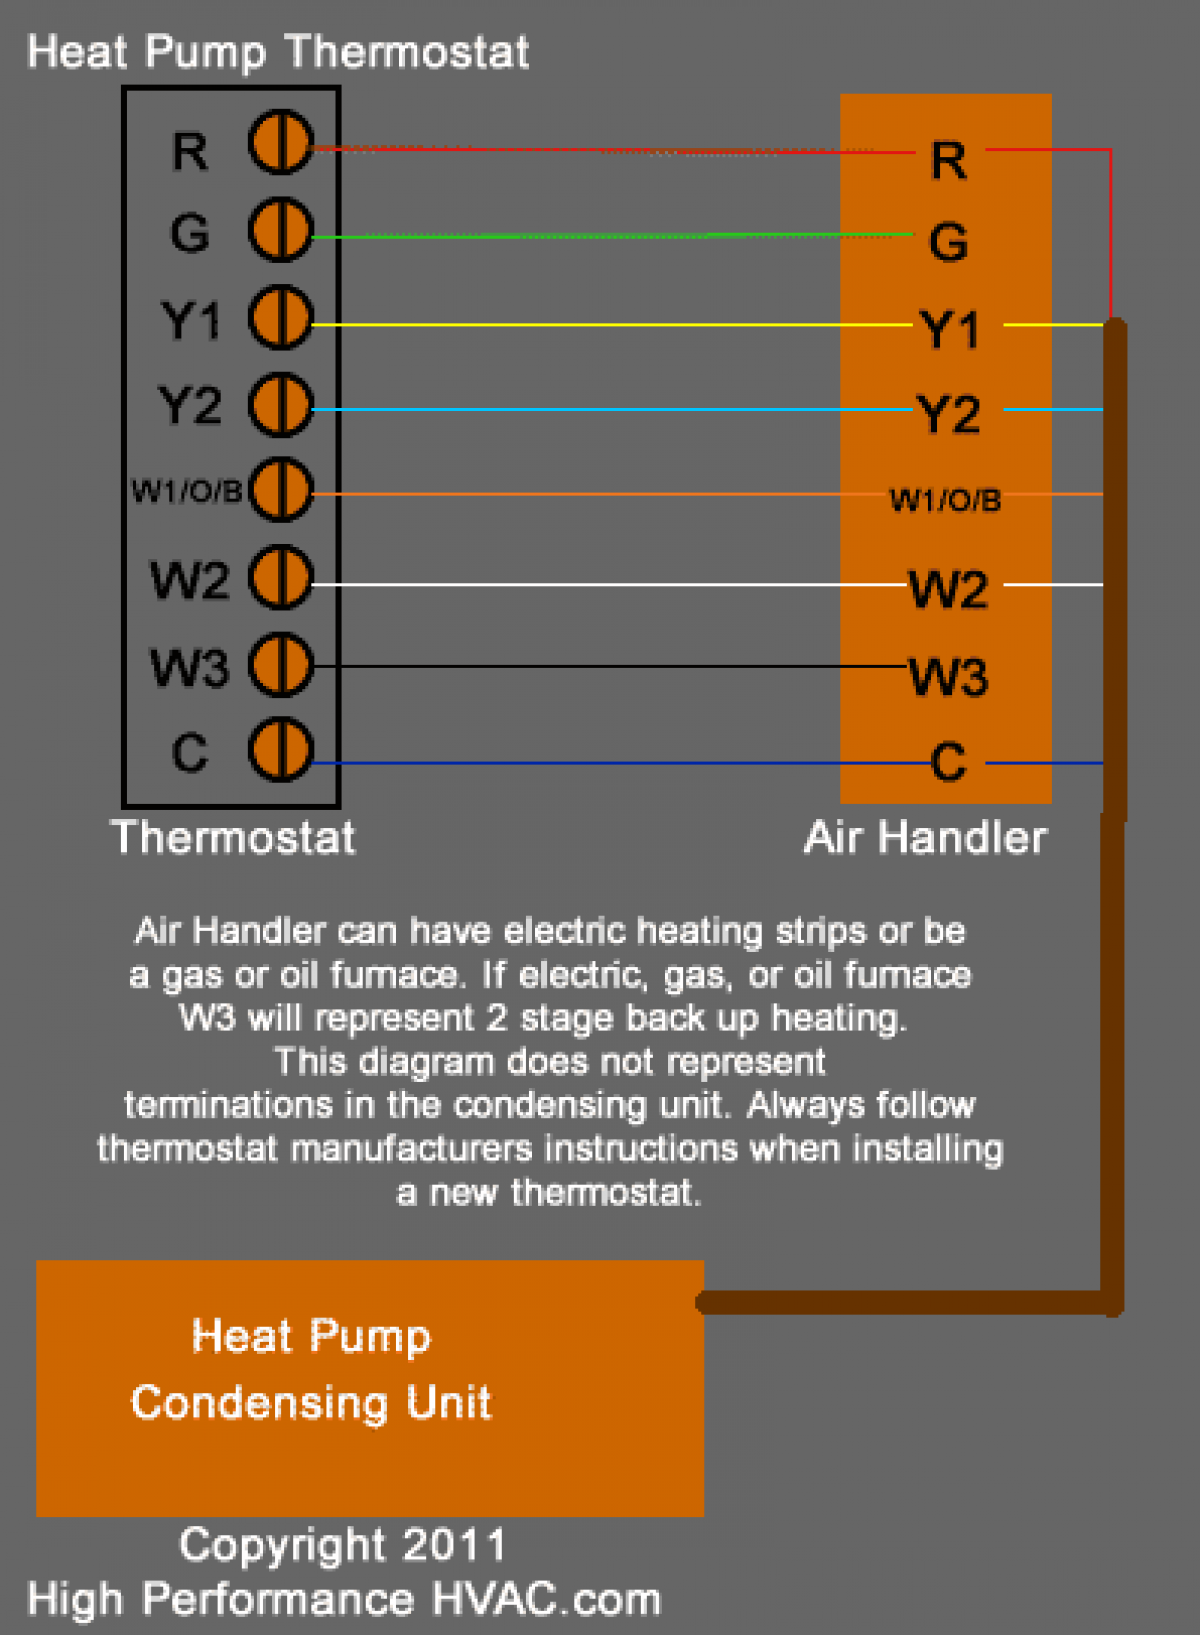 [SODI_2457]   Heat Pump Thermostat Wiring Chart Diagram Easy Step-by-Step | Wiring Diagram Rheem Heat Pump |  | High Performance HVAC